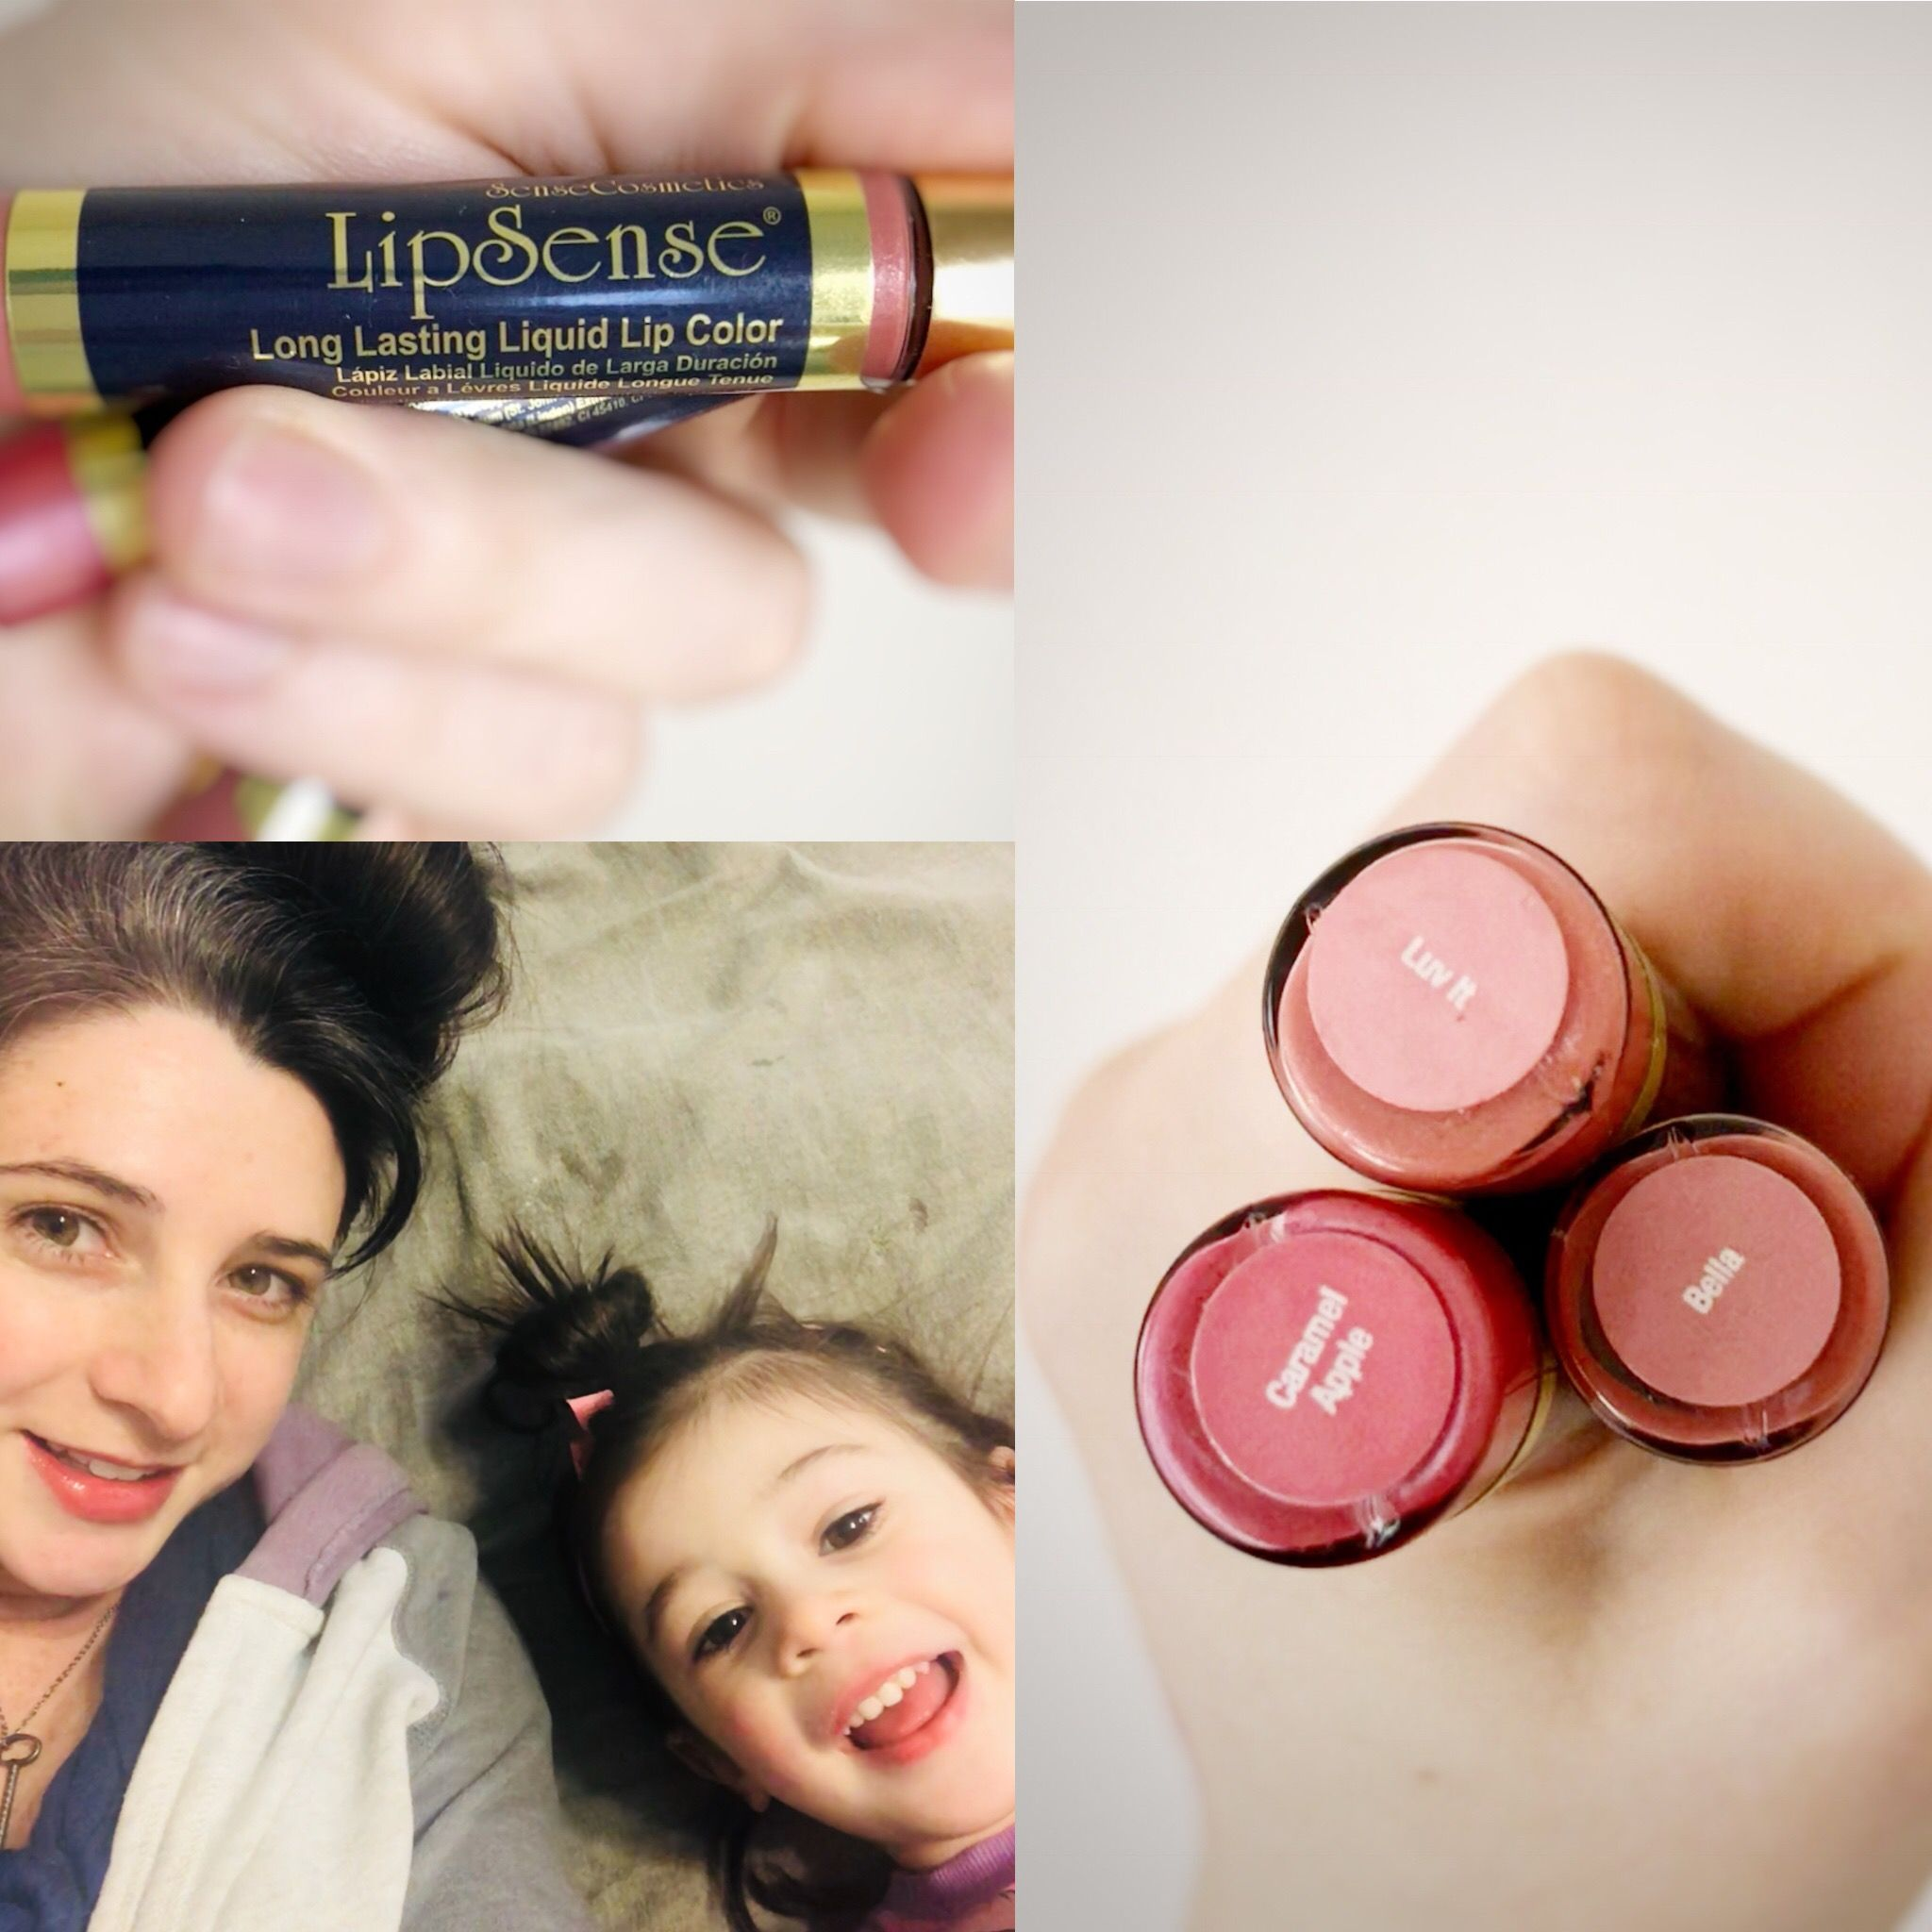 Want some long lasting, smudge proof, kiss proof lipstick